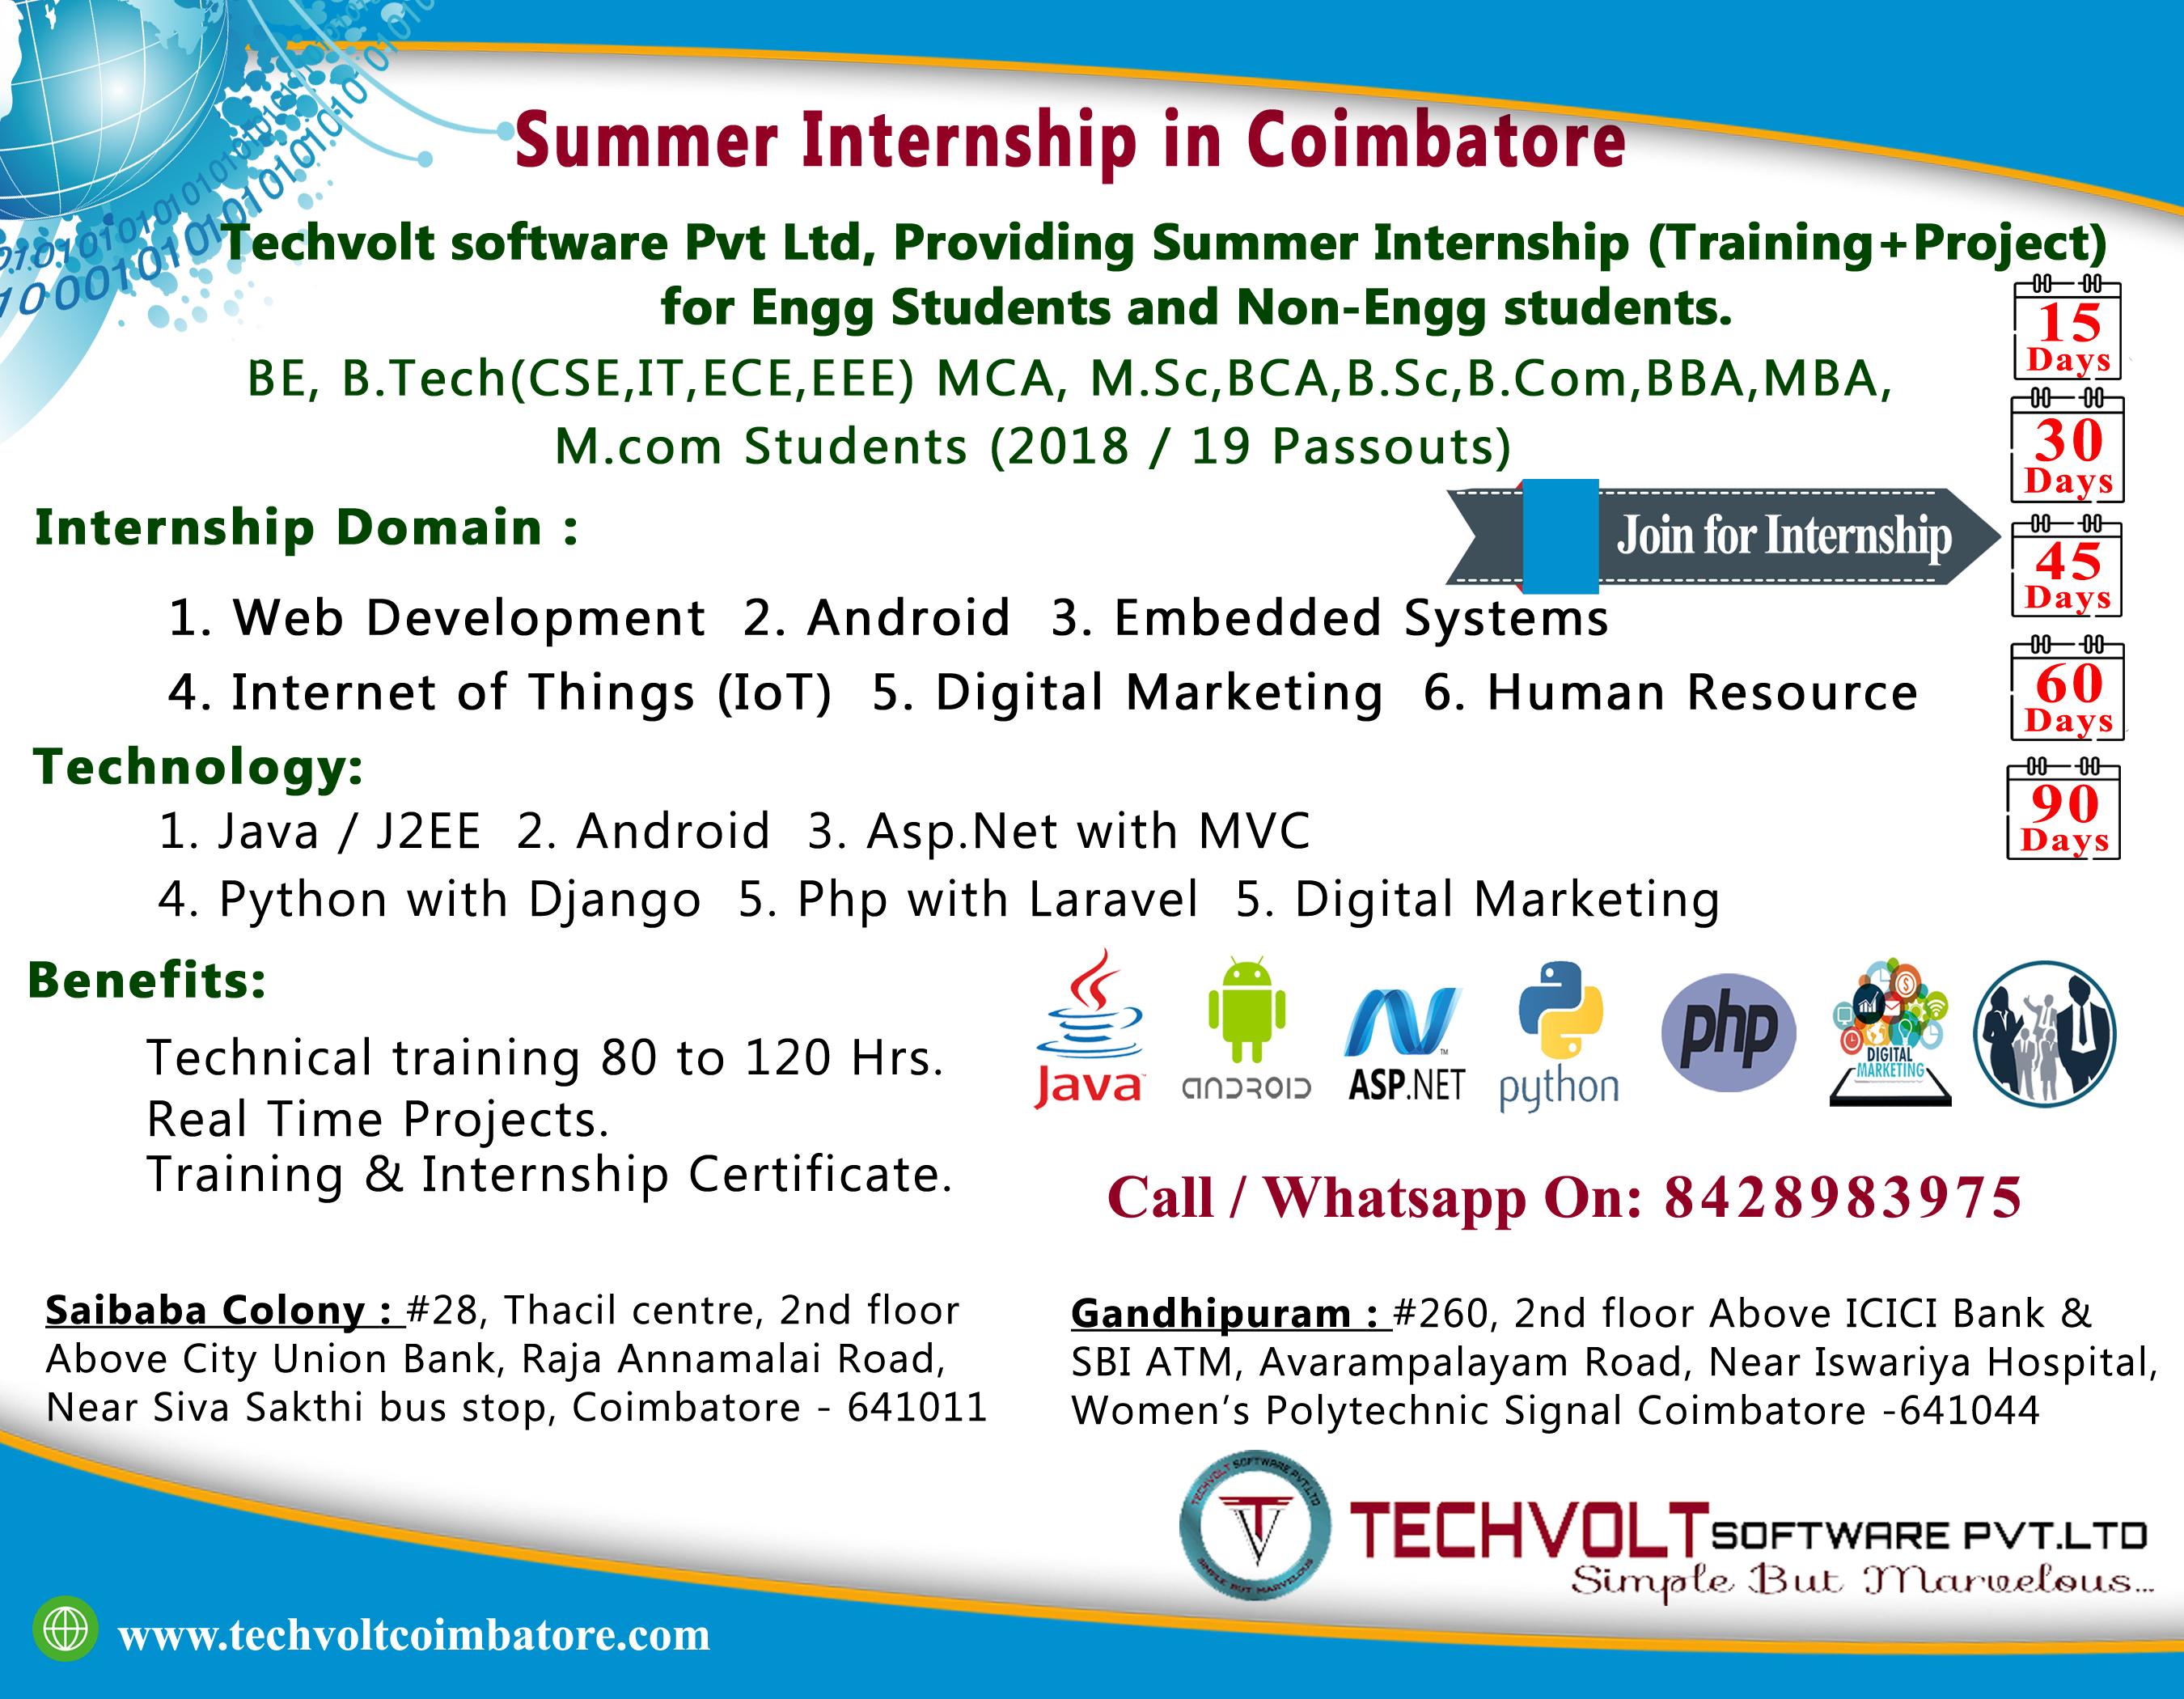 Students Internship Training With Placement in Coimbatore||Techvolt Software